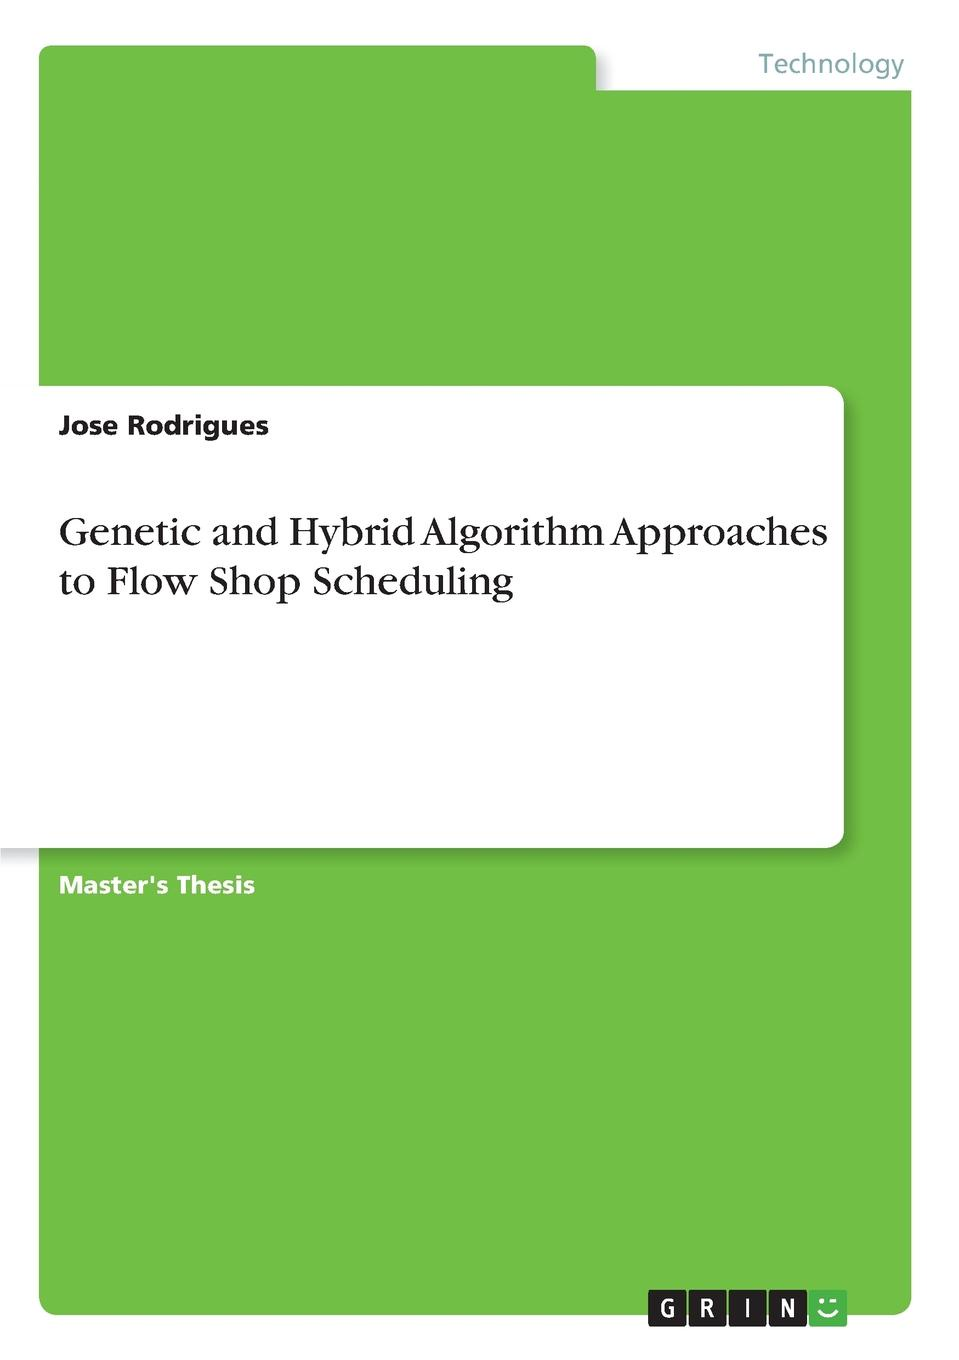 Jose Rodrigues Genetic and Hybrid Algorithm Approaches to Flow Shop Scheduling p589c4104 4105 4106 4107 4108 4109